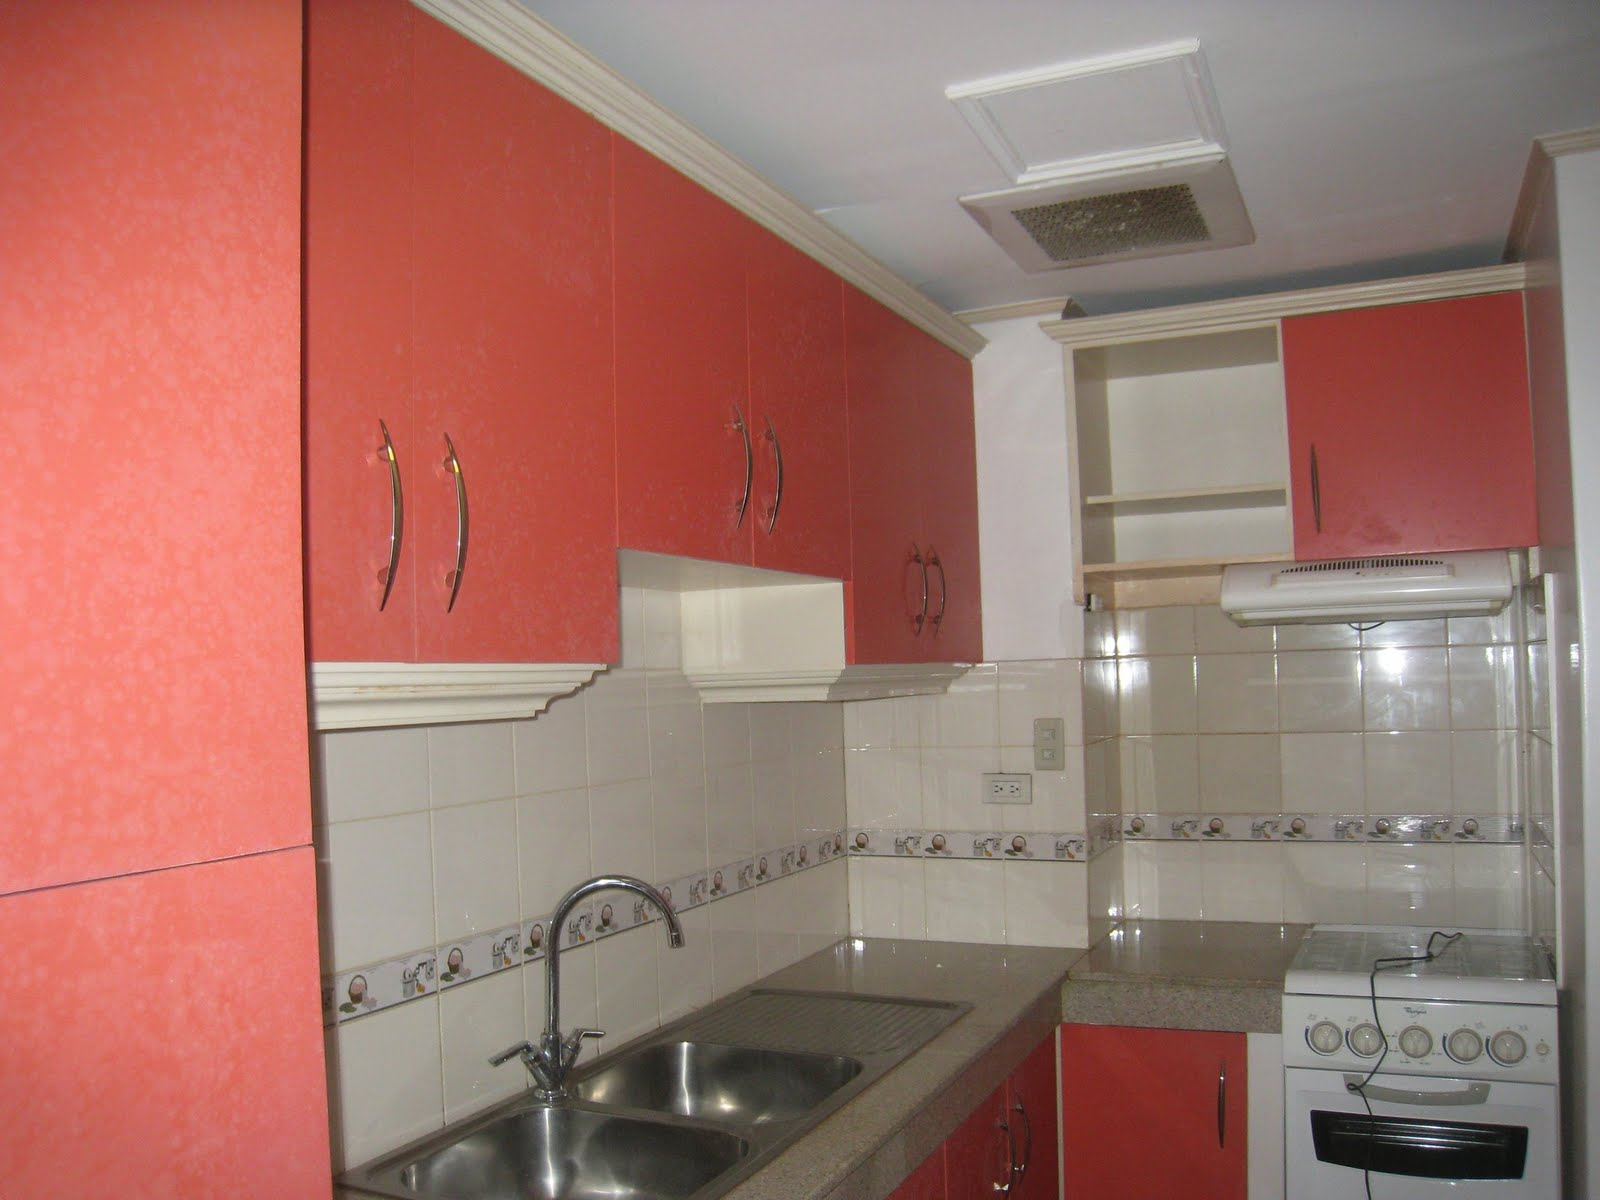 Philippines one stop realty finds for Built in place kitchen cabinets